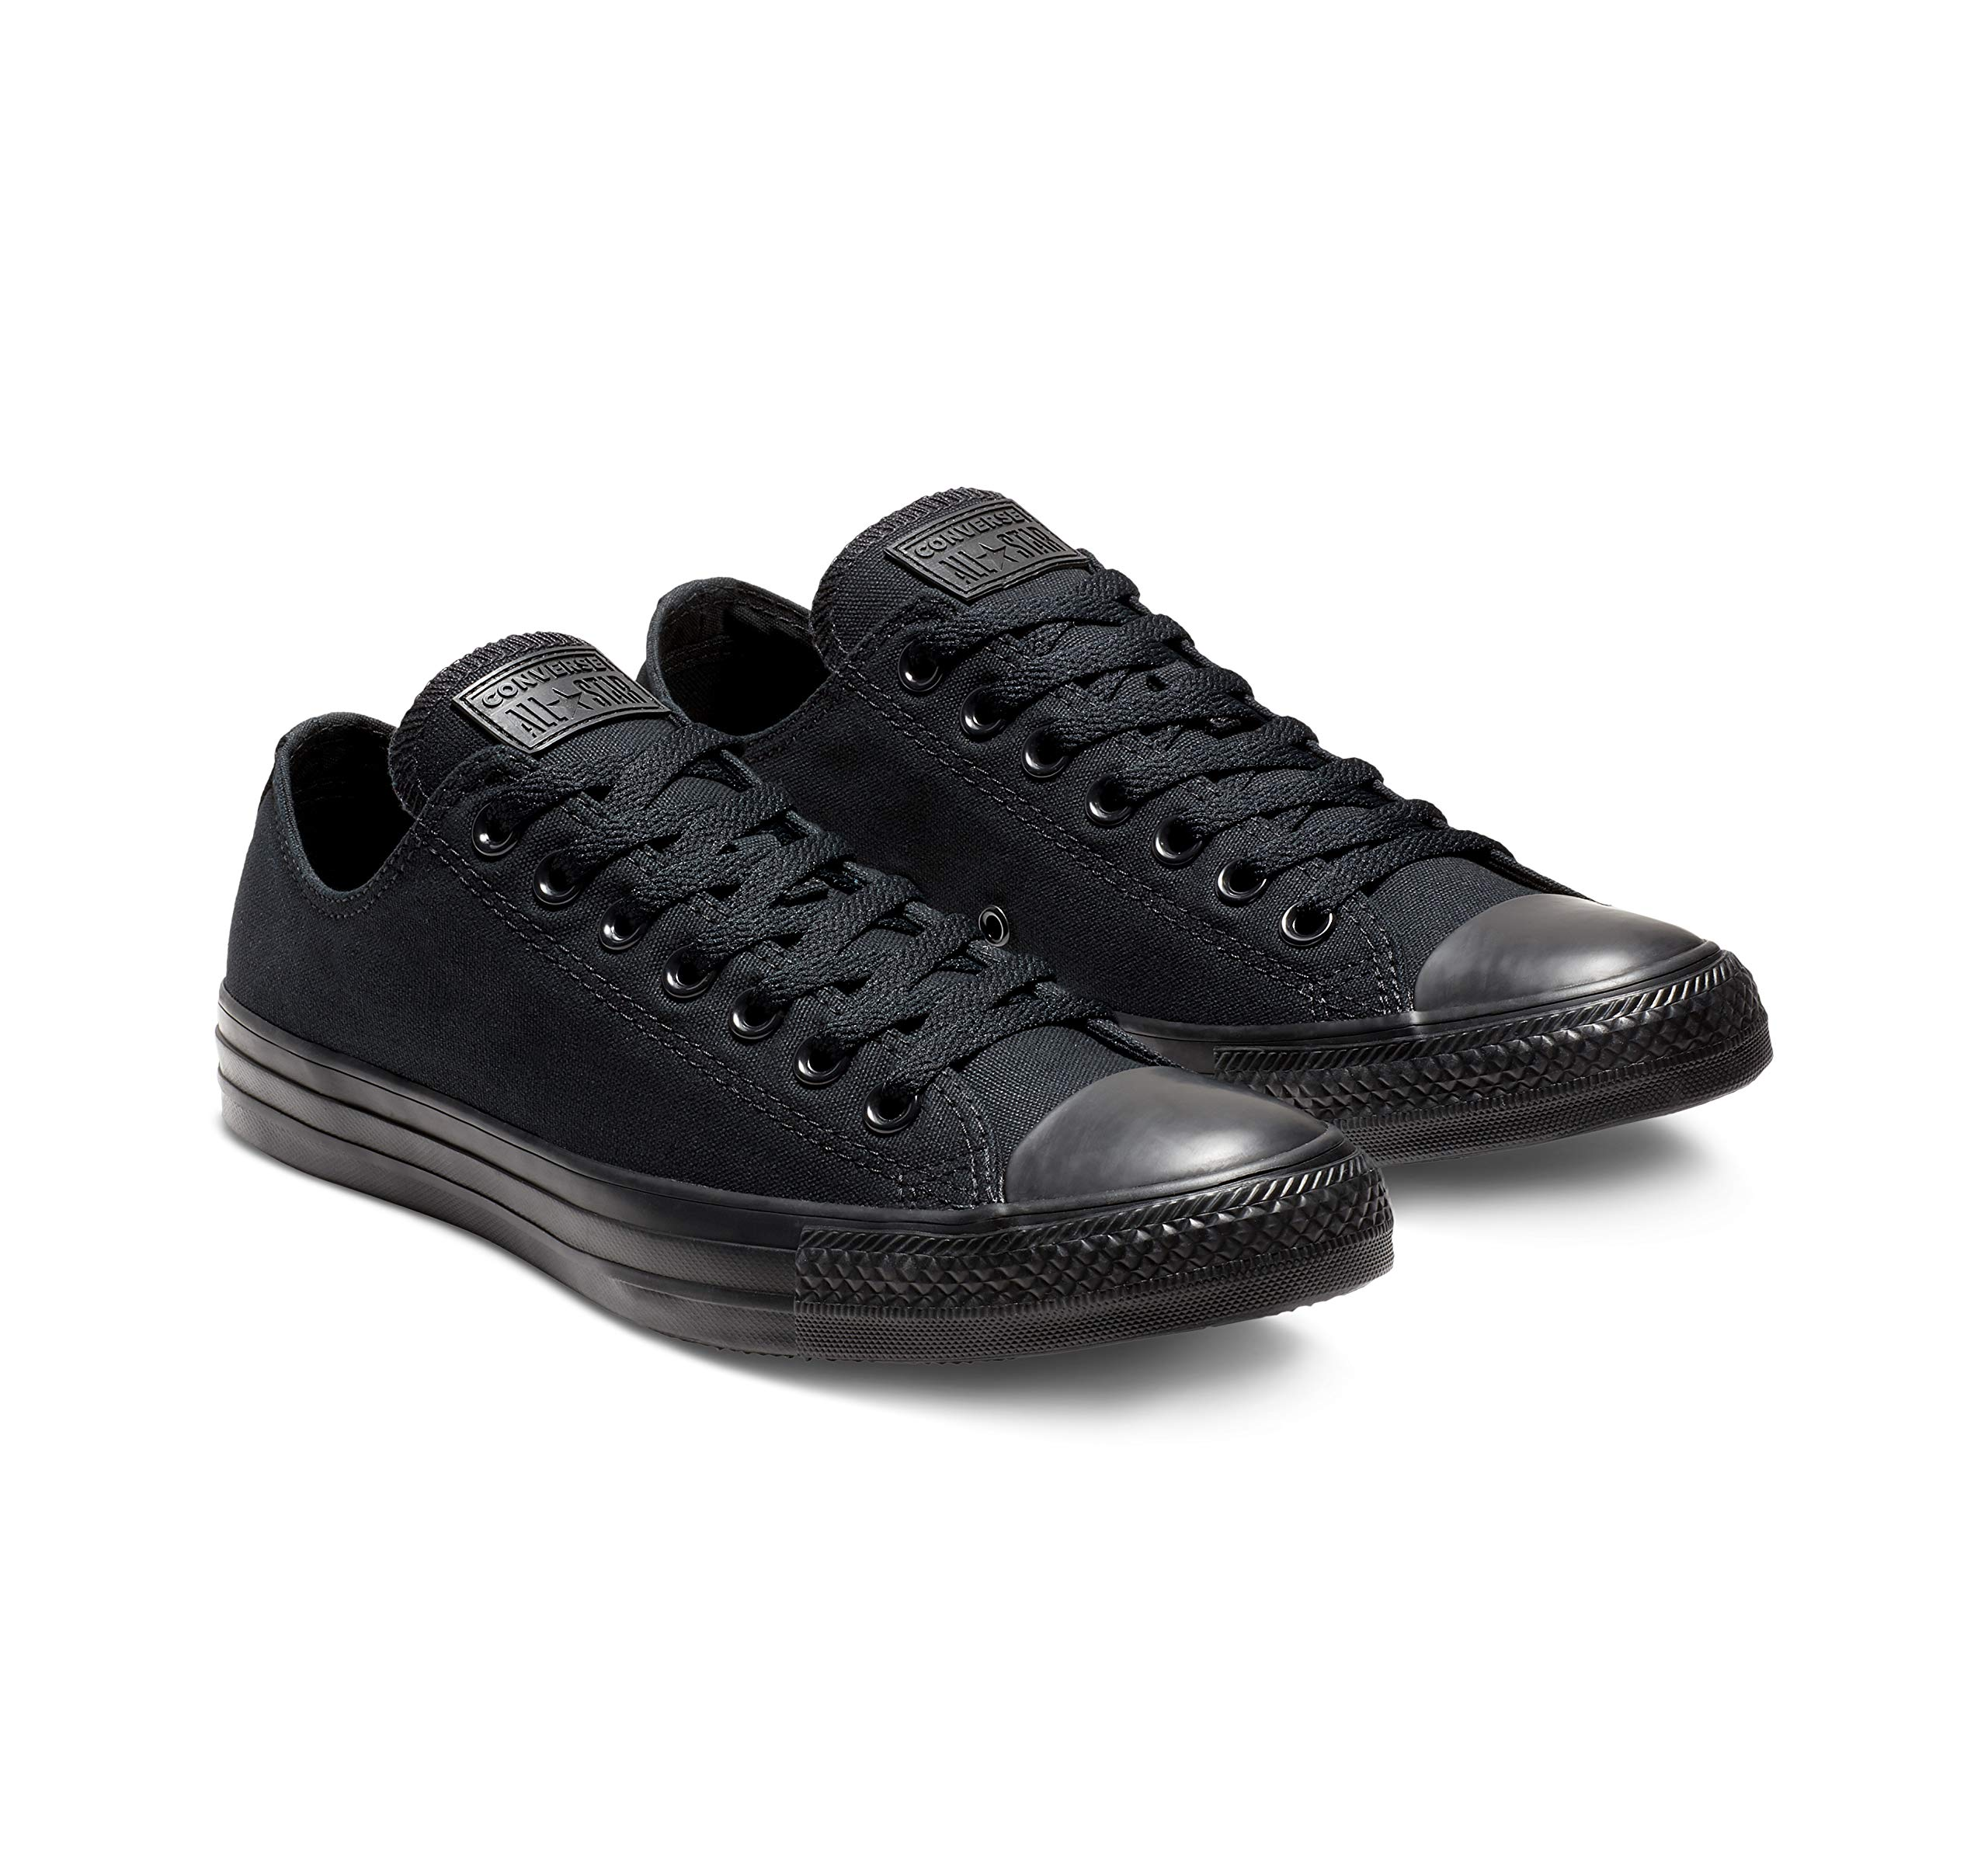 Converse Unisex Chuck Taylor All Star Low Top Black Monochrome Sneakers - 9 D(M) US by Converse (Image #5)